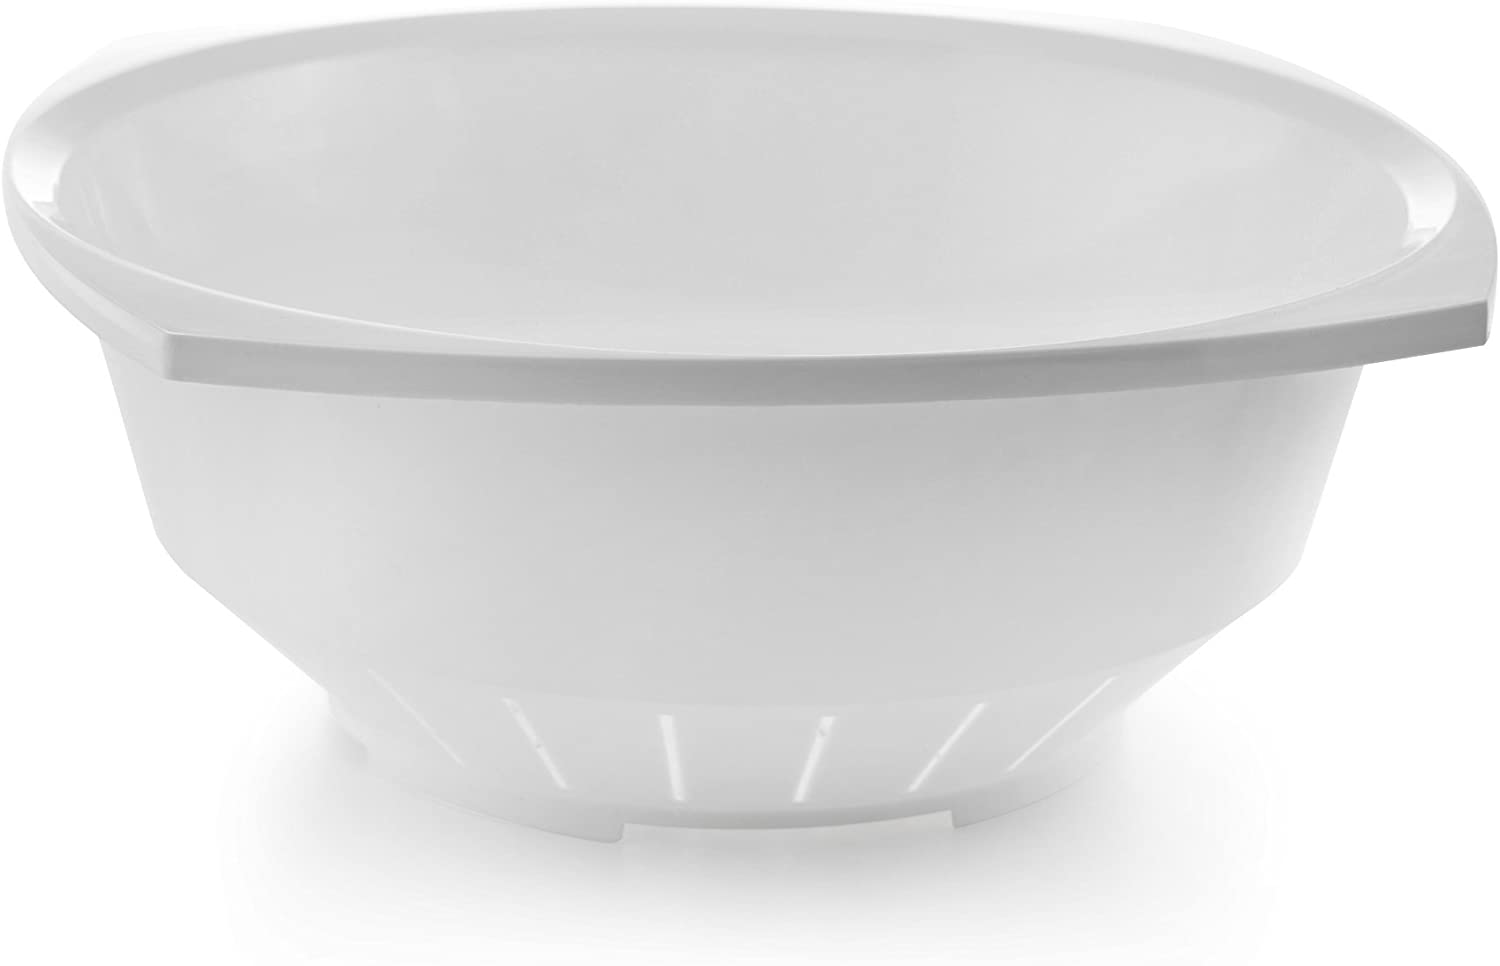 YBM Home 10 Inch Square Plastic Colander– Made of Food Safe BPA-Free Plastic - Durable and Dishwasher Safe - Use for Pasta, Noodles, Spaghetti, Vegetables and More 31-1126-white (1, White)